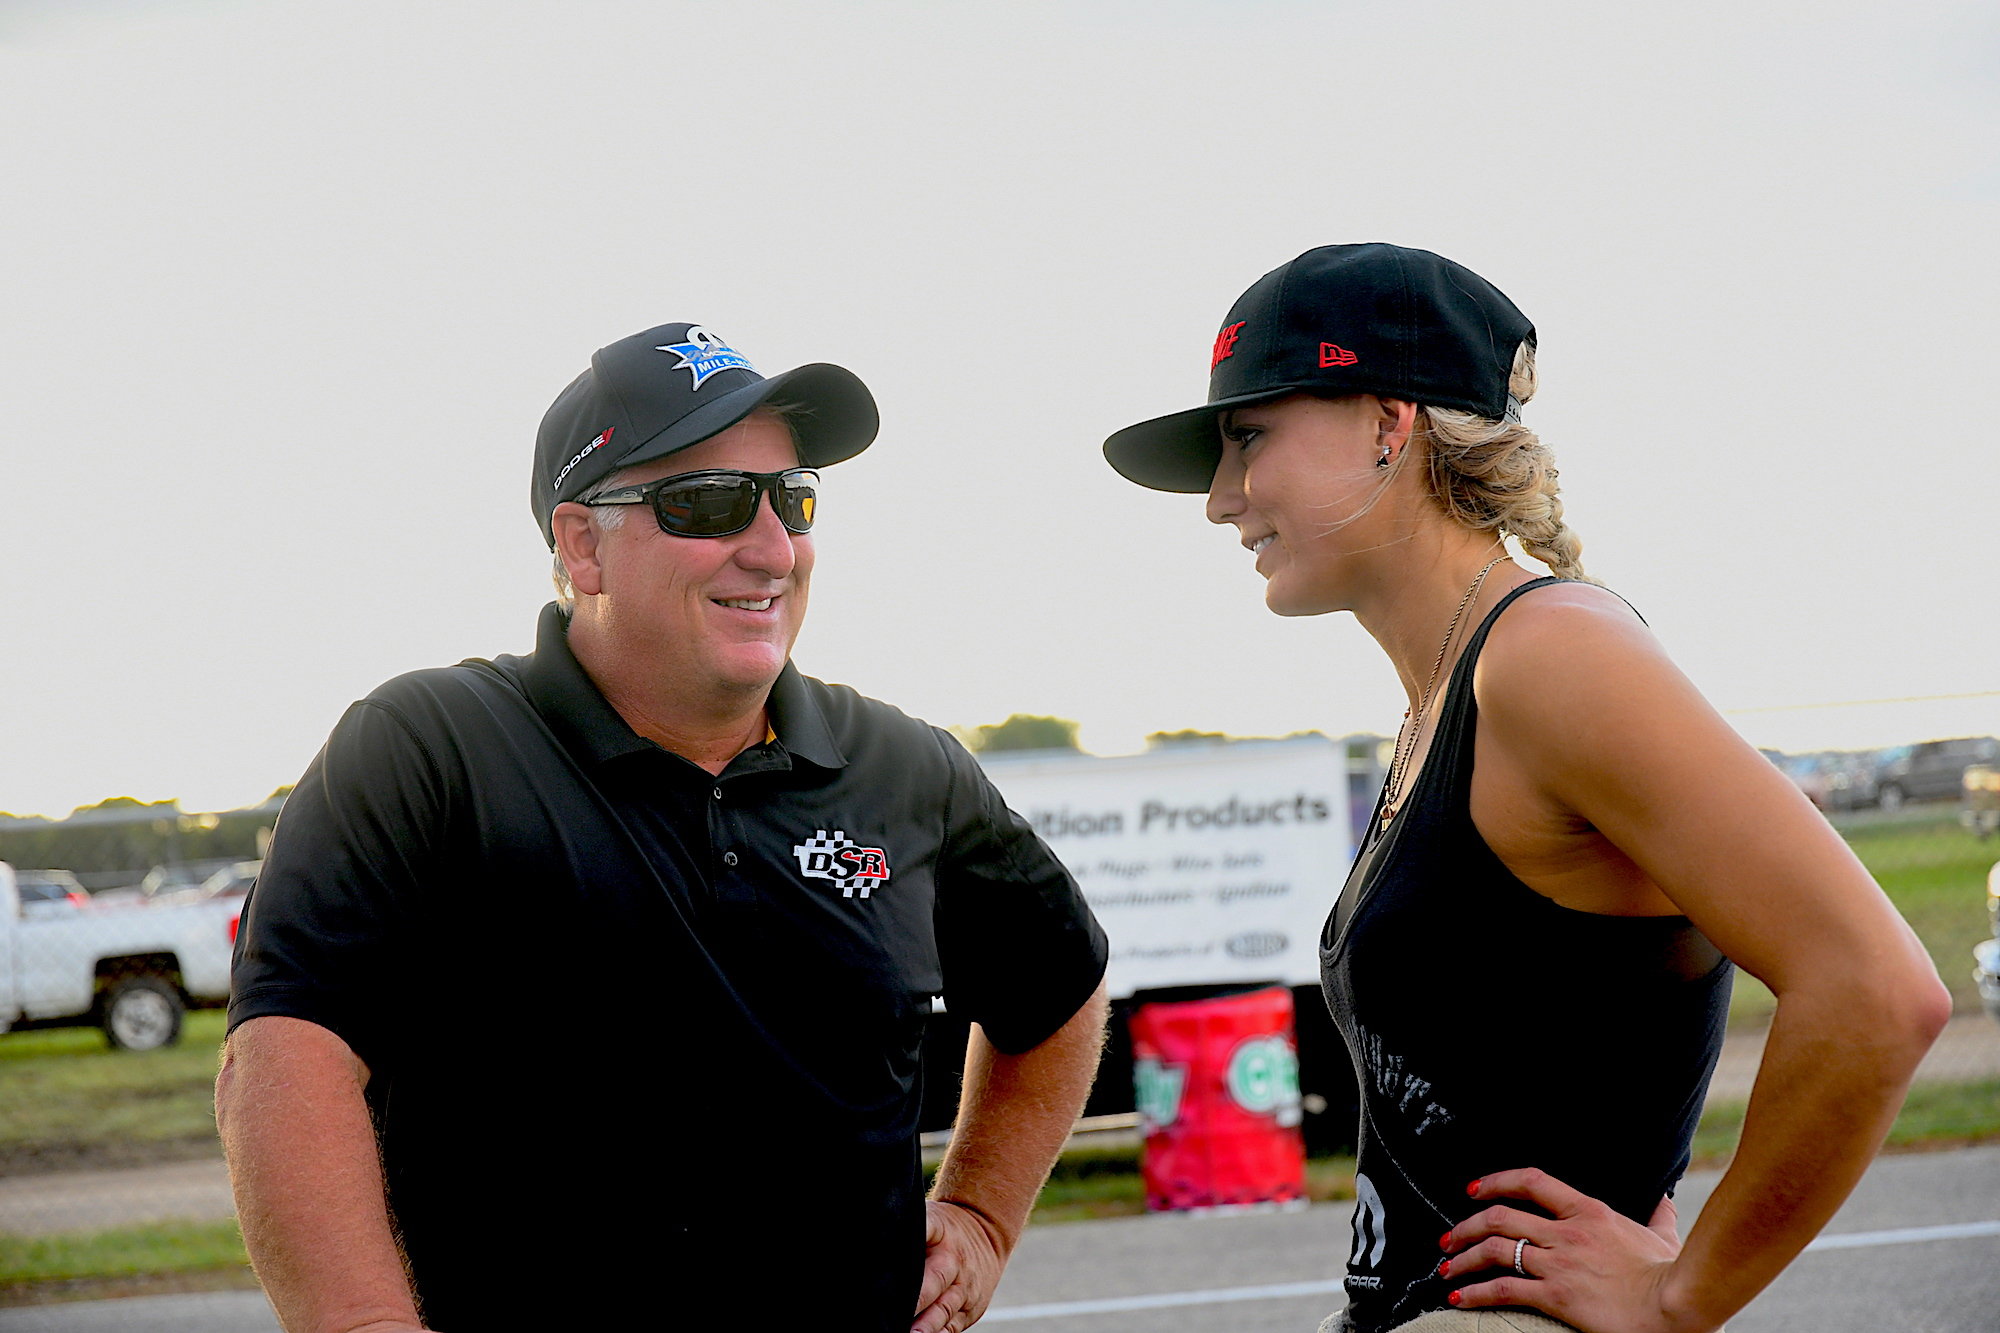 Leah talking with a crew member